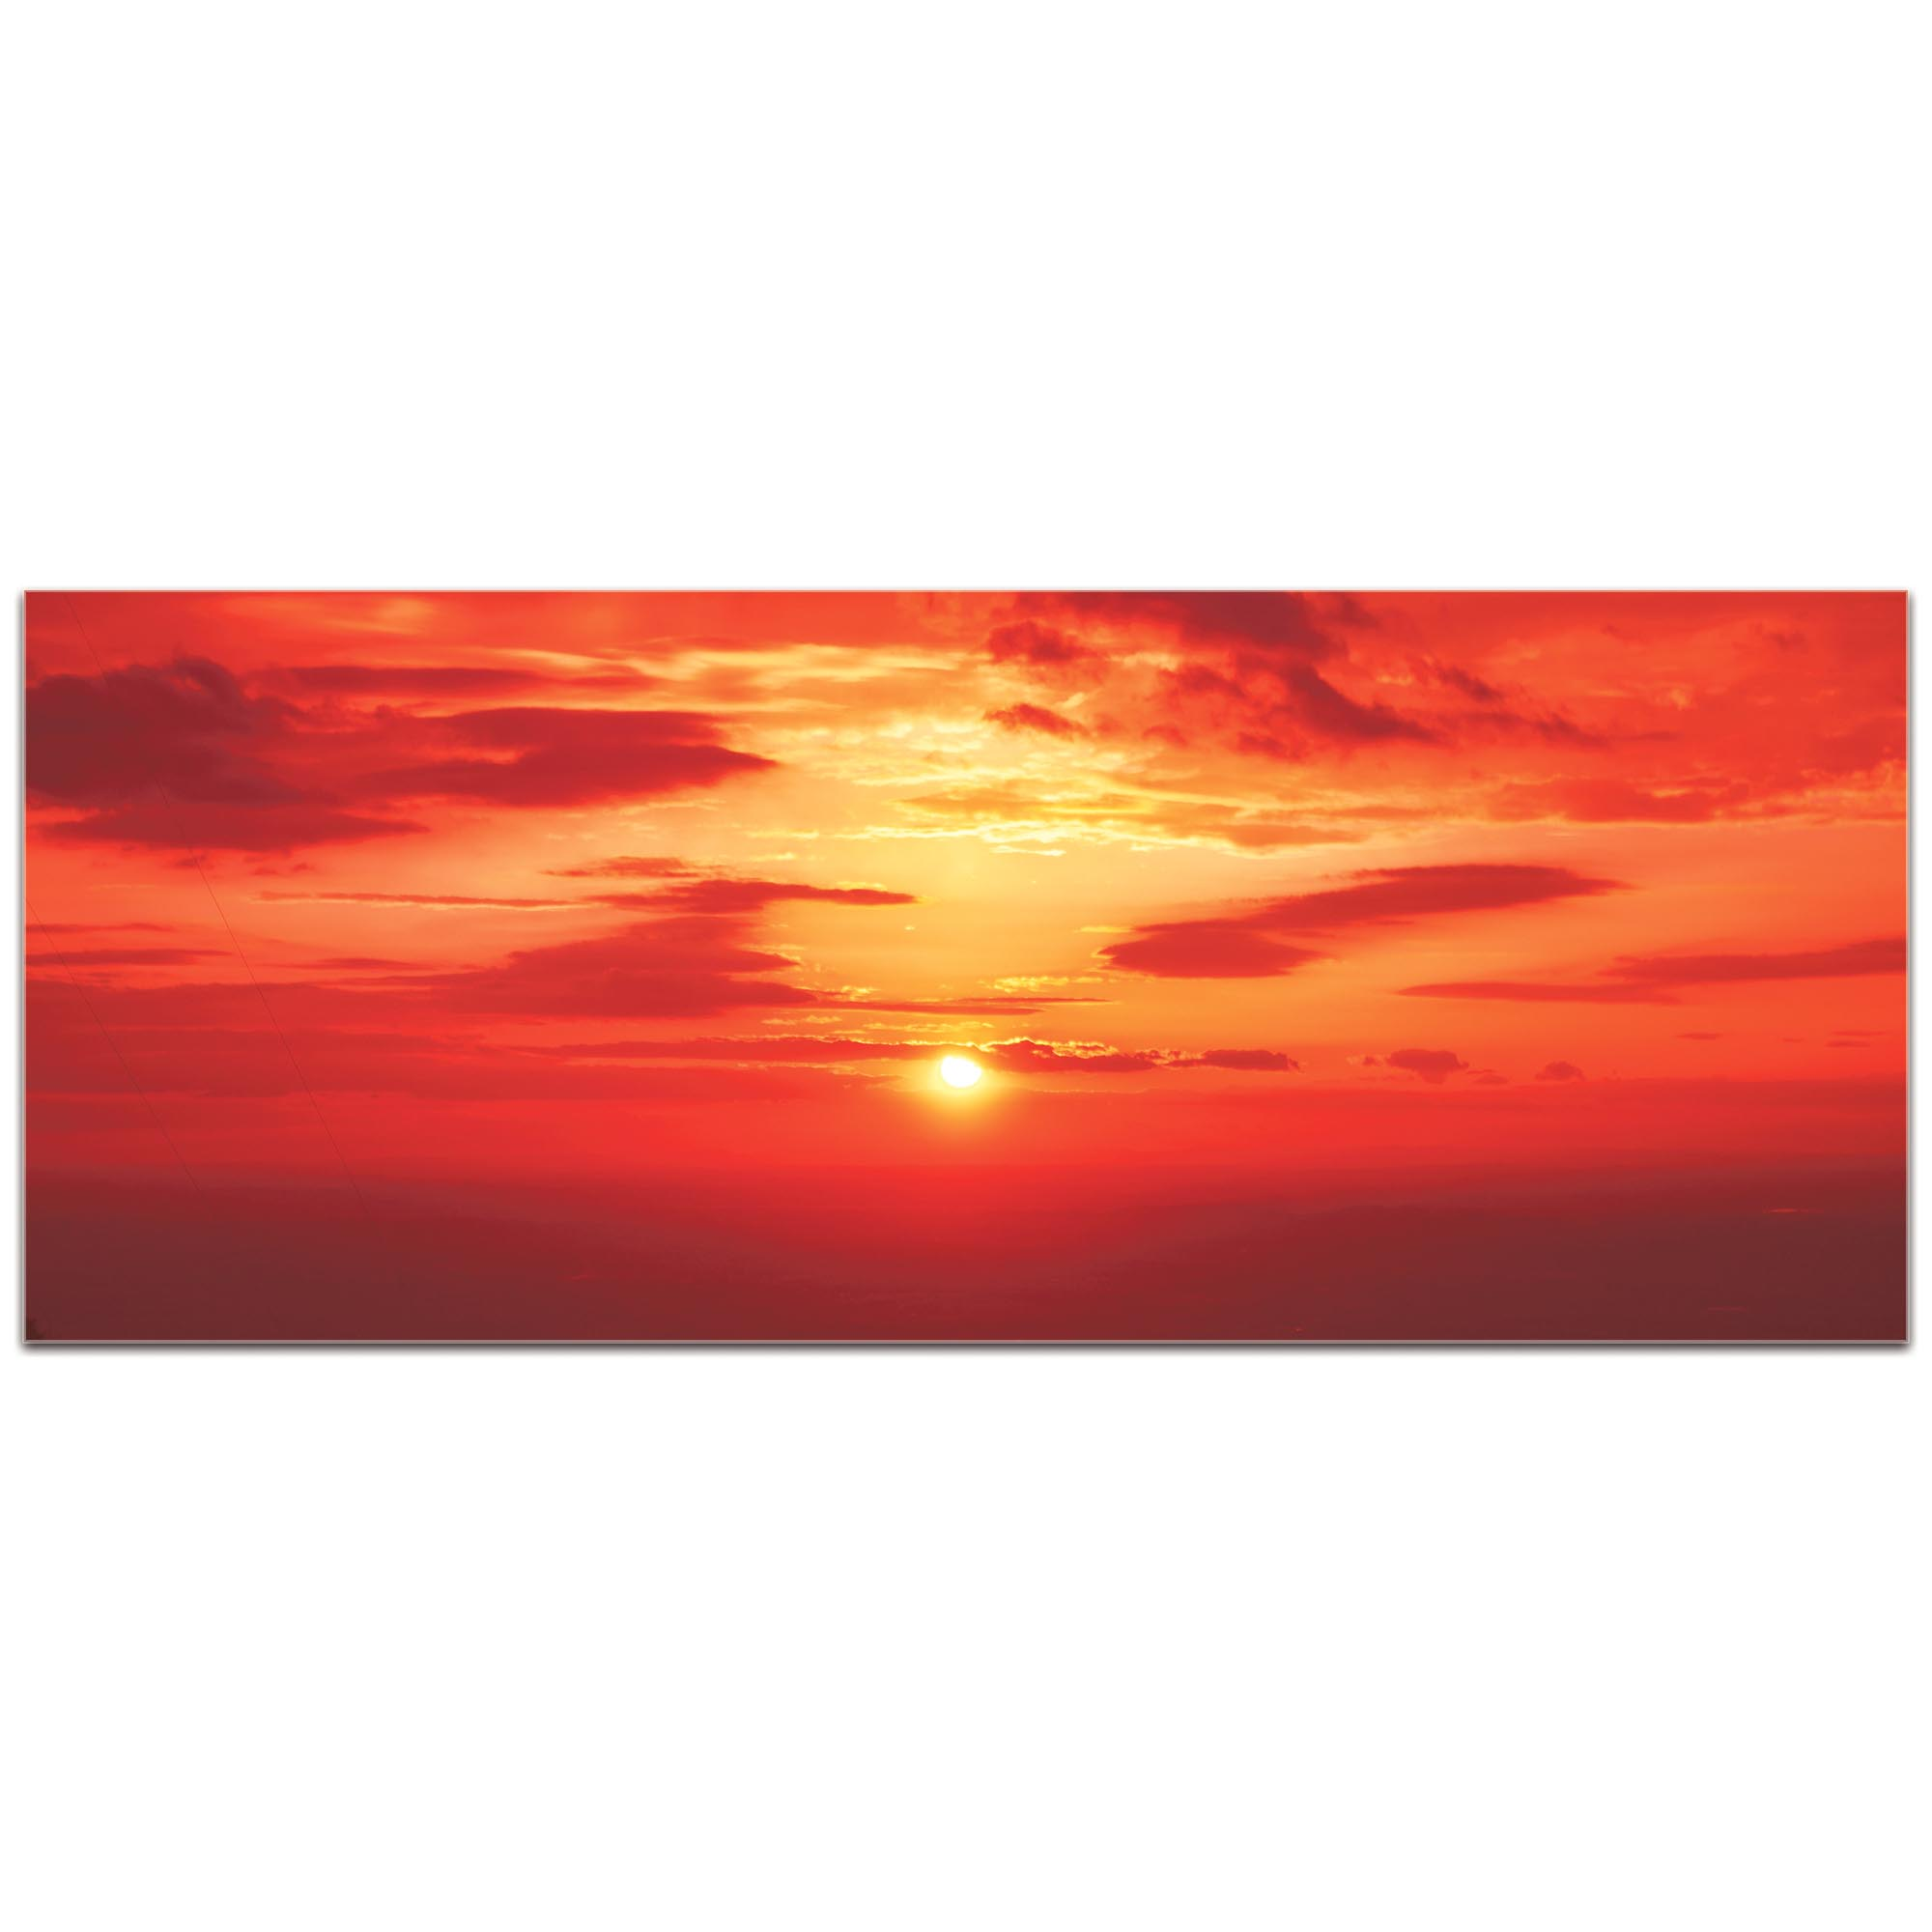 Landscape Photography 'Skies of Flame' - Sunset Art on Metal or Plexiglass - Image 2